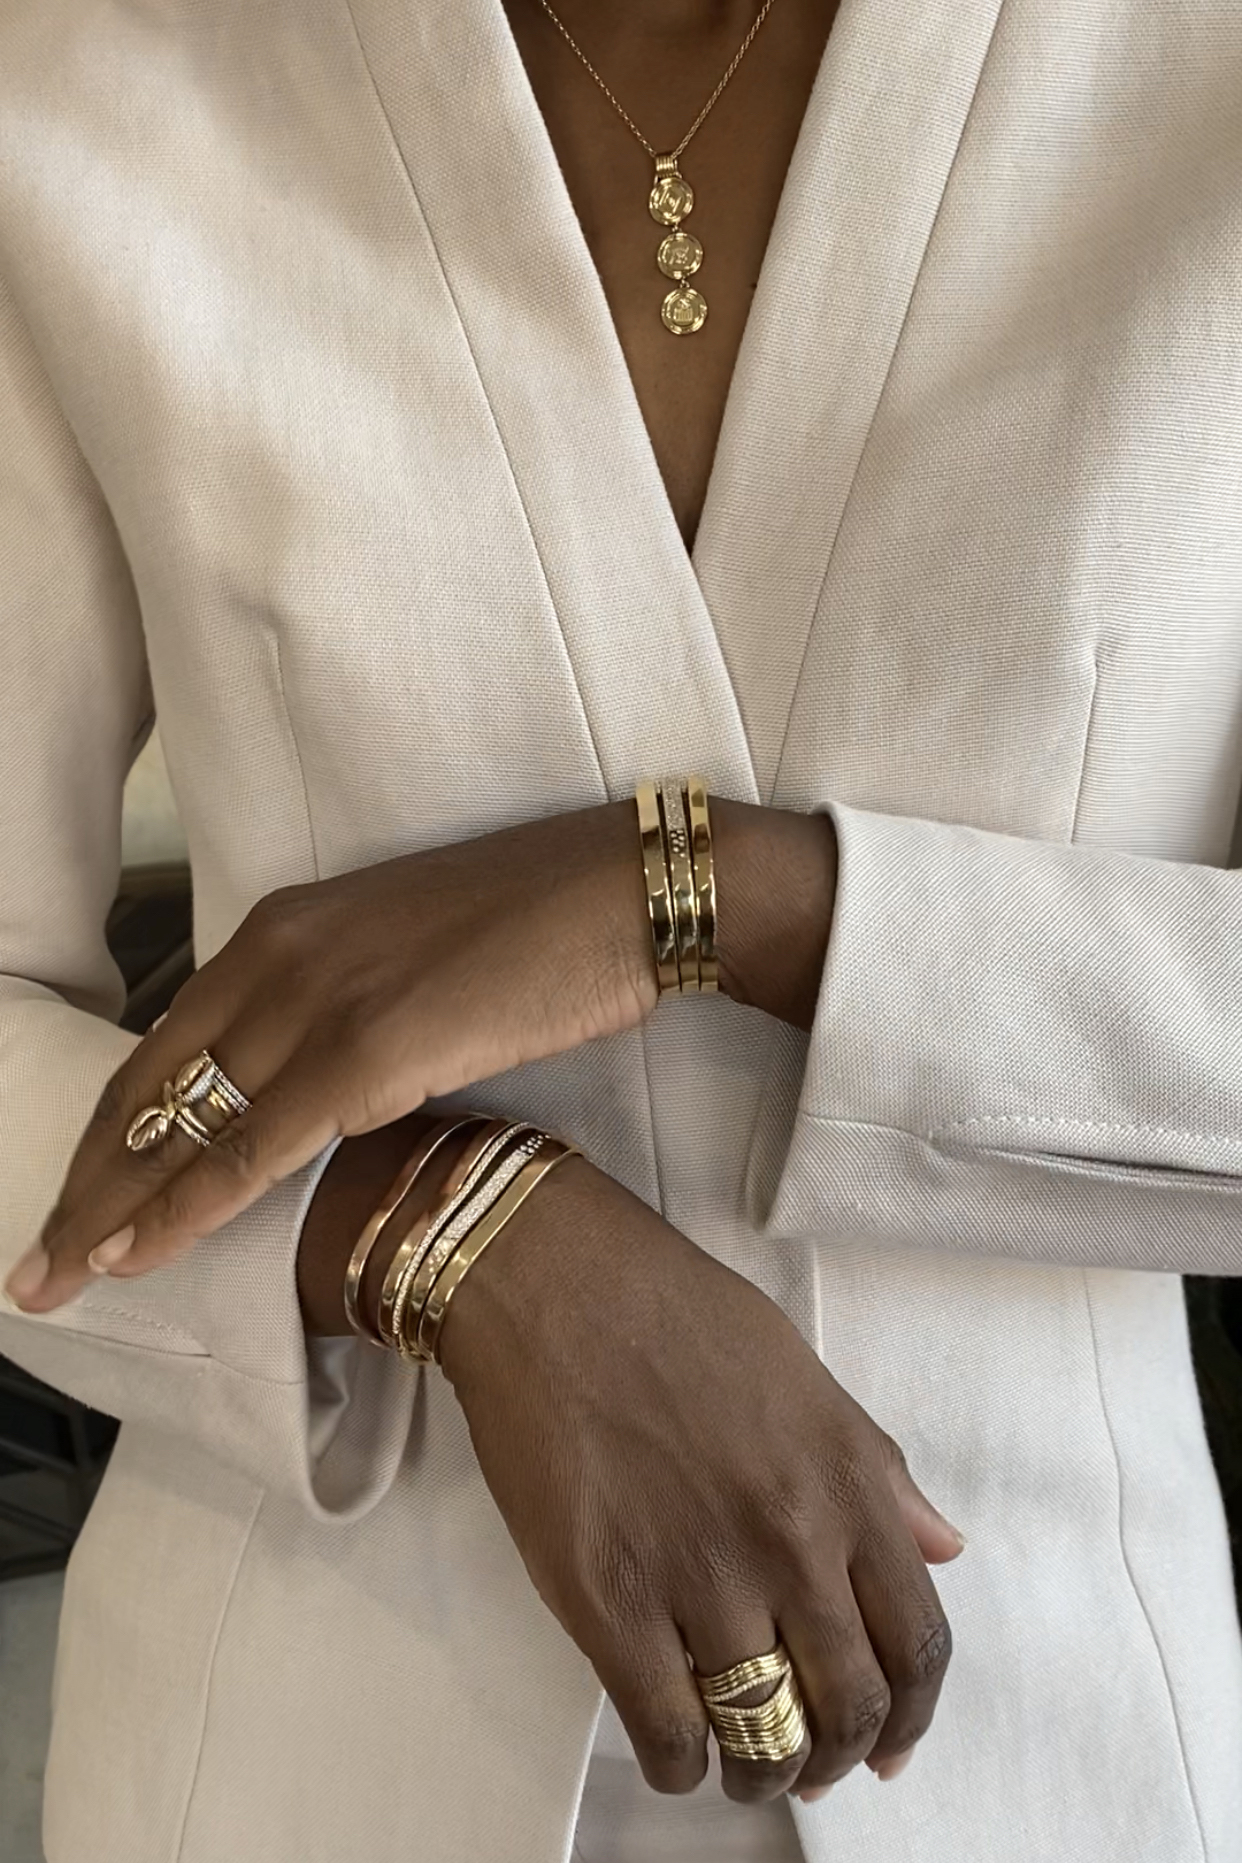 """""""How I Wear It:"""" Catherine Sarr, jewelry designer and founder, Almasika. Image, courtesy, Natural Diamond Council, published in Jill Newman, """"This is how jewelry designer Catherine Sarr of Almasika styles her diamonds,"""" February 26. 2021."""